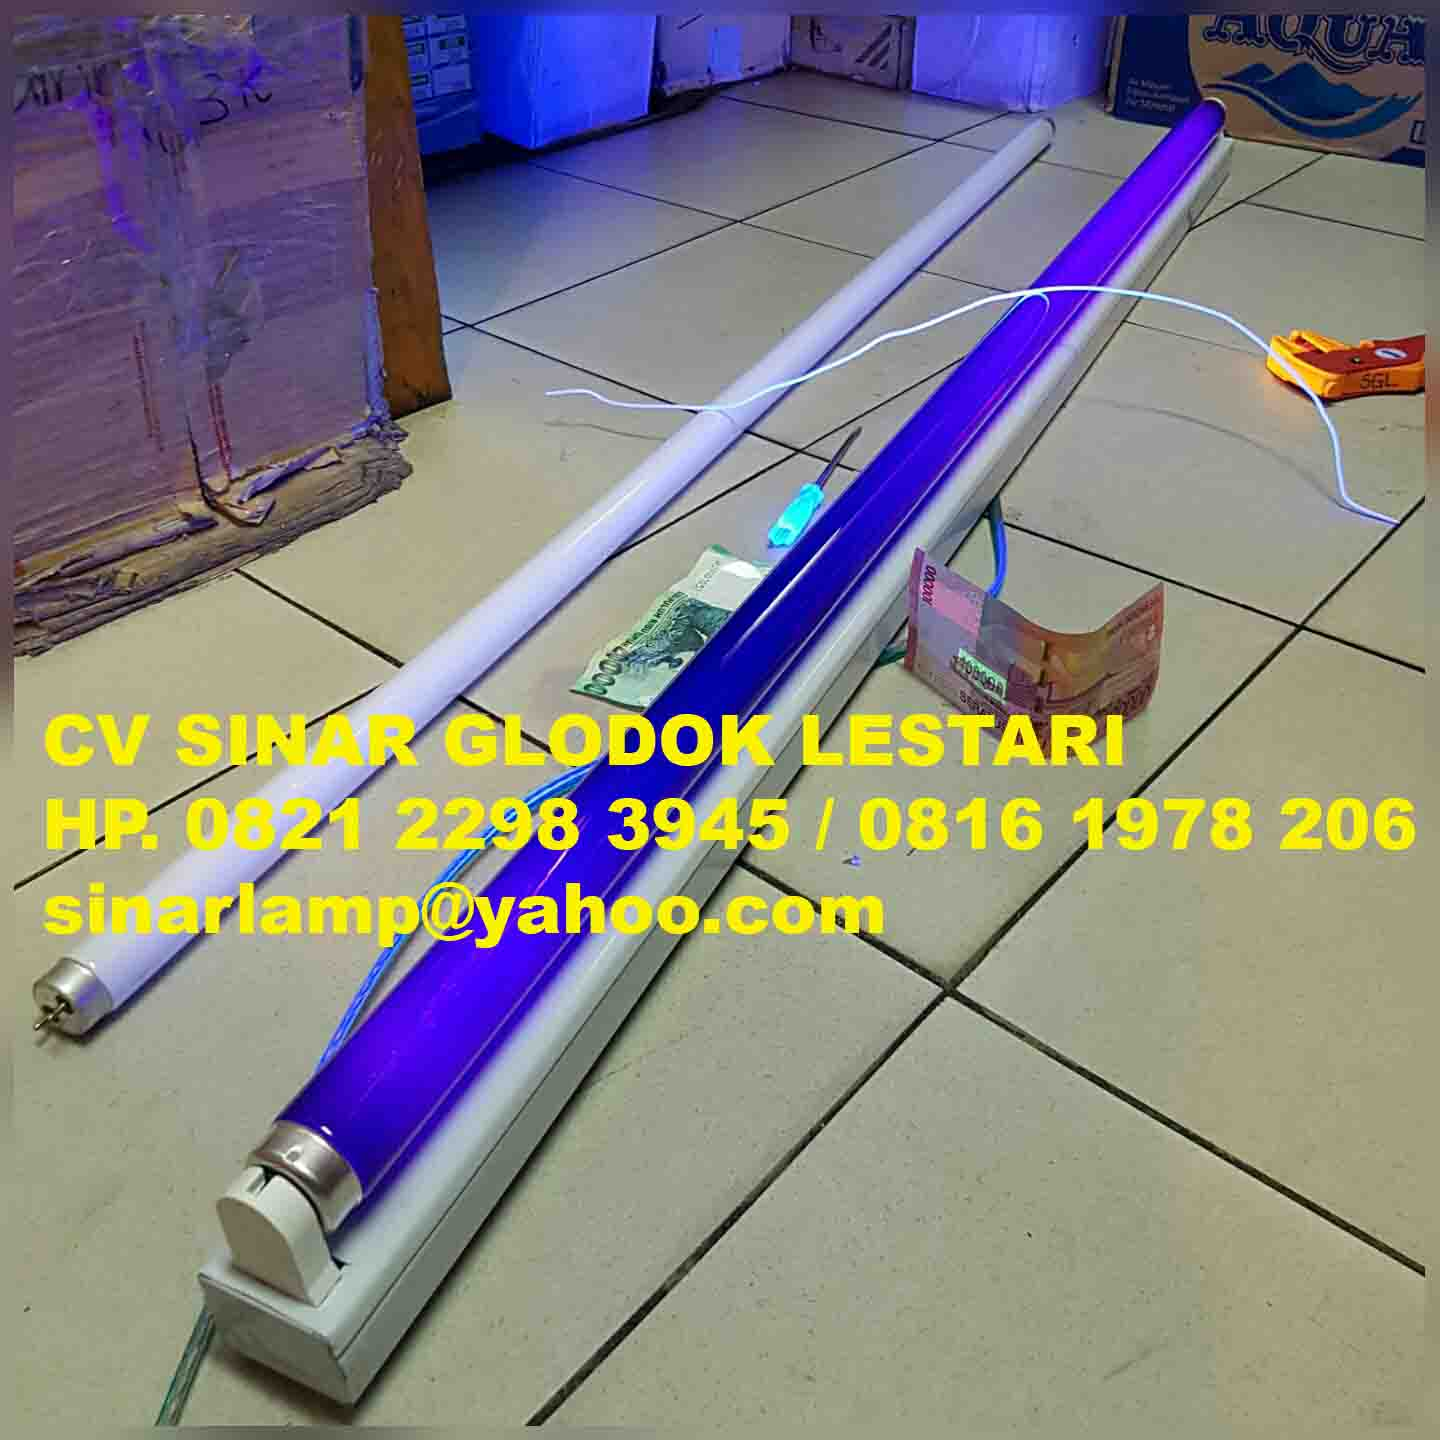 Lampu UV Blacklight Blue 40 watt + Kap Lampu